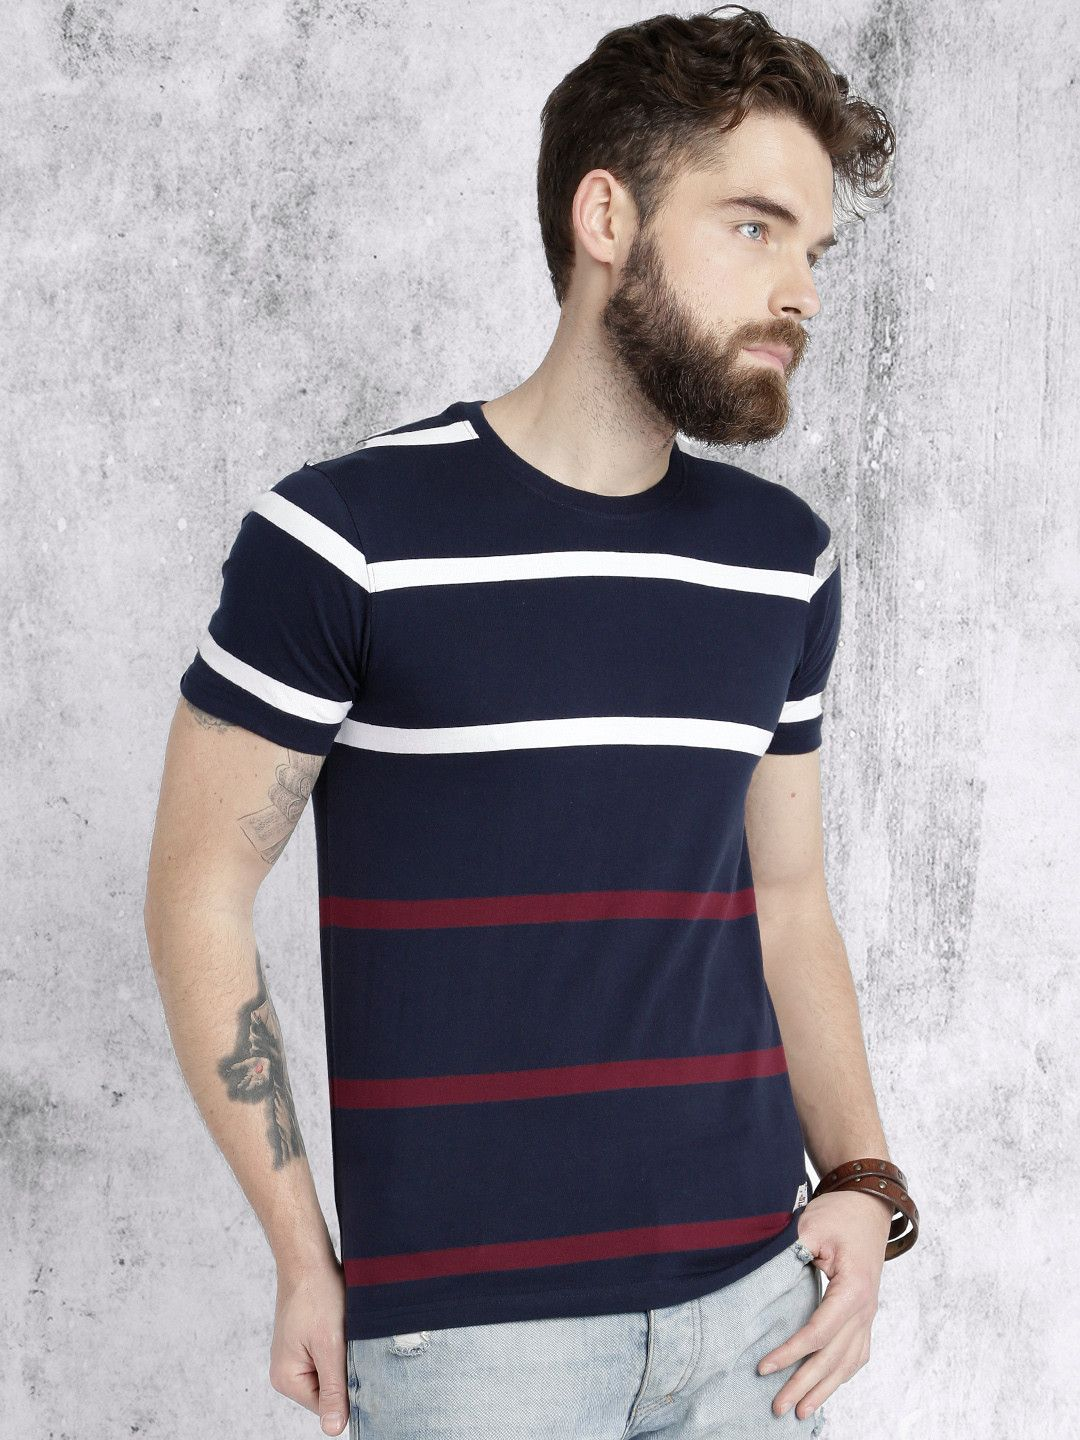 00cd50be3674c Roadster Navy Blue Striped Round Neck T-shirt